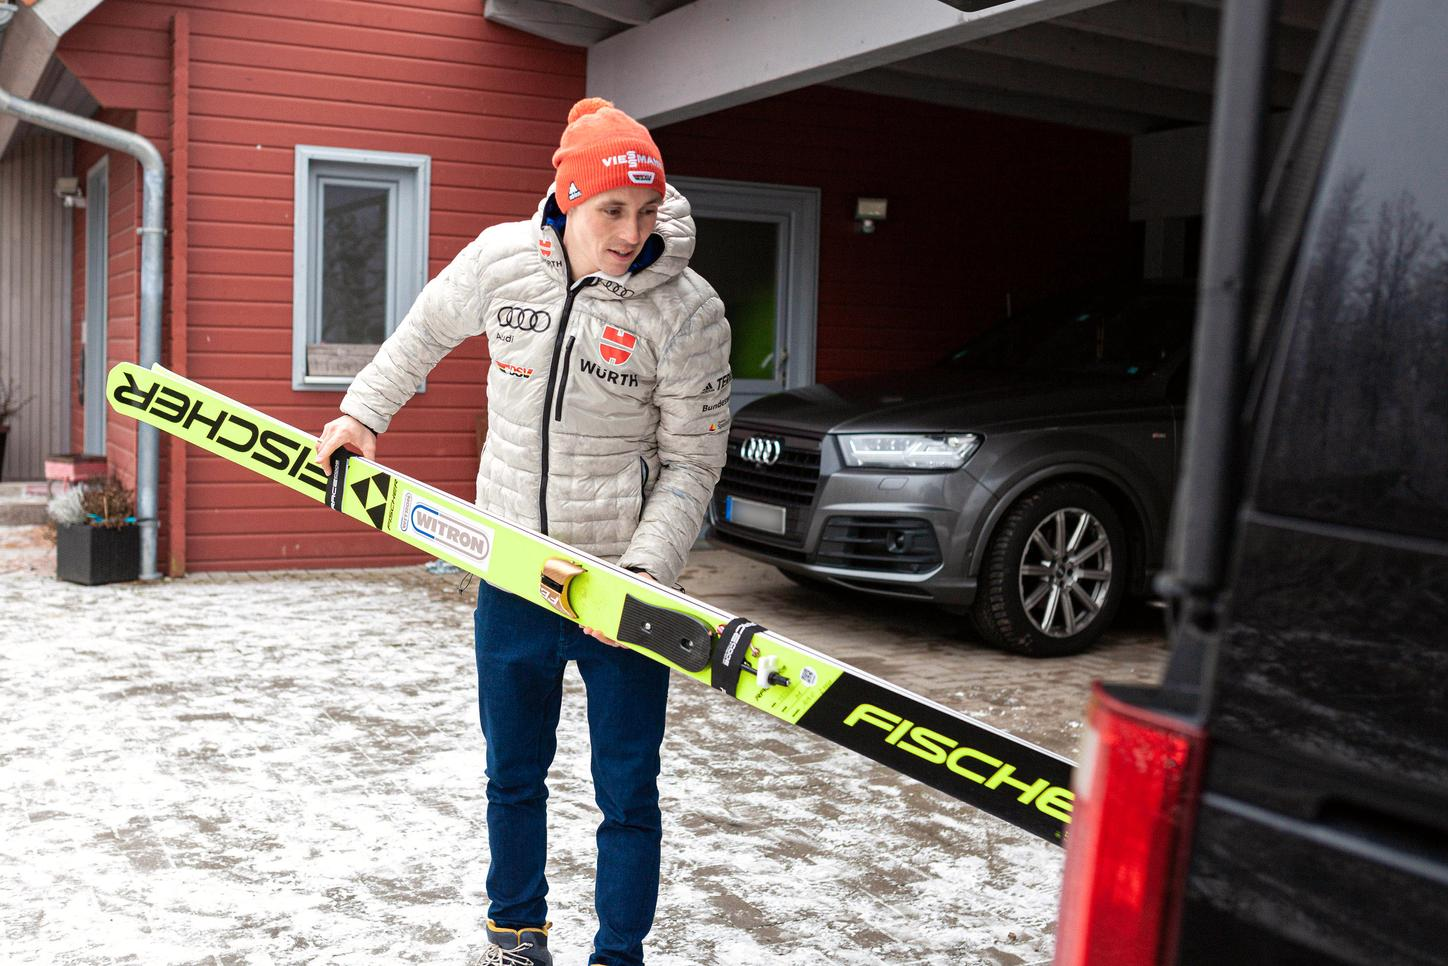 The image shows Eric Frenzel with his skis in front of his house.